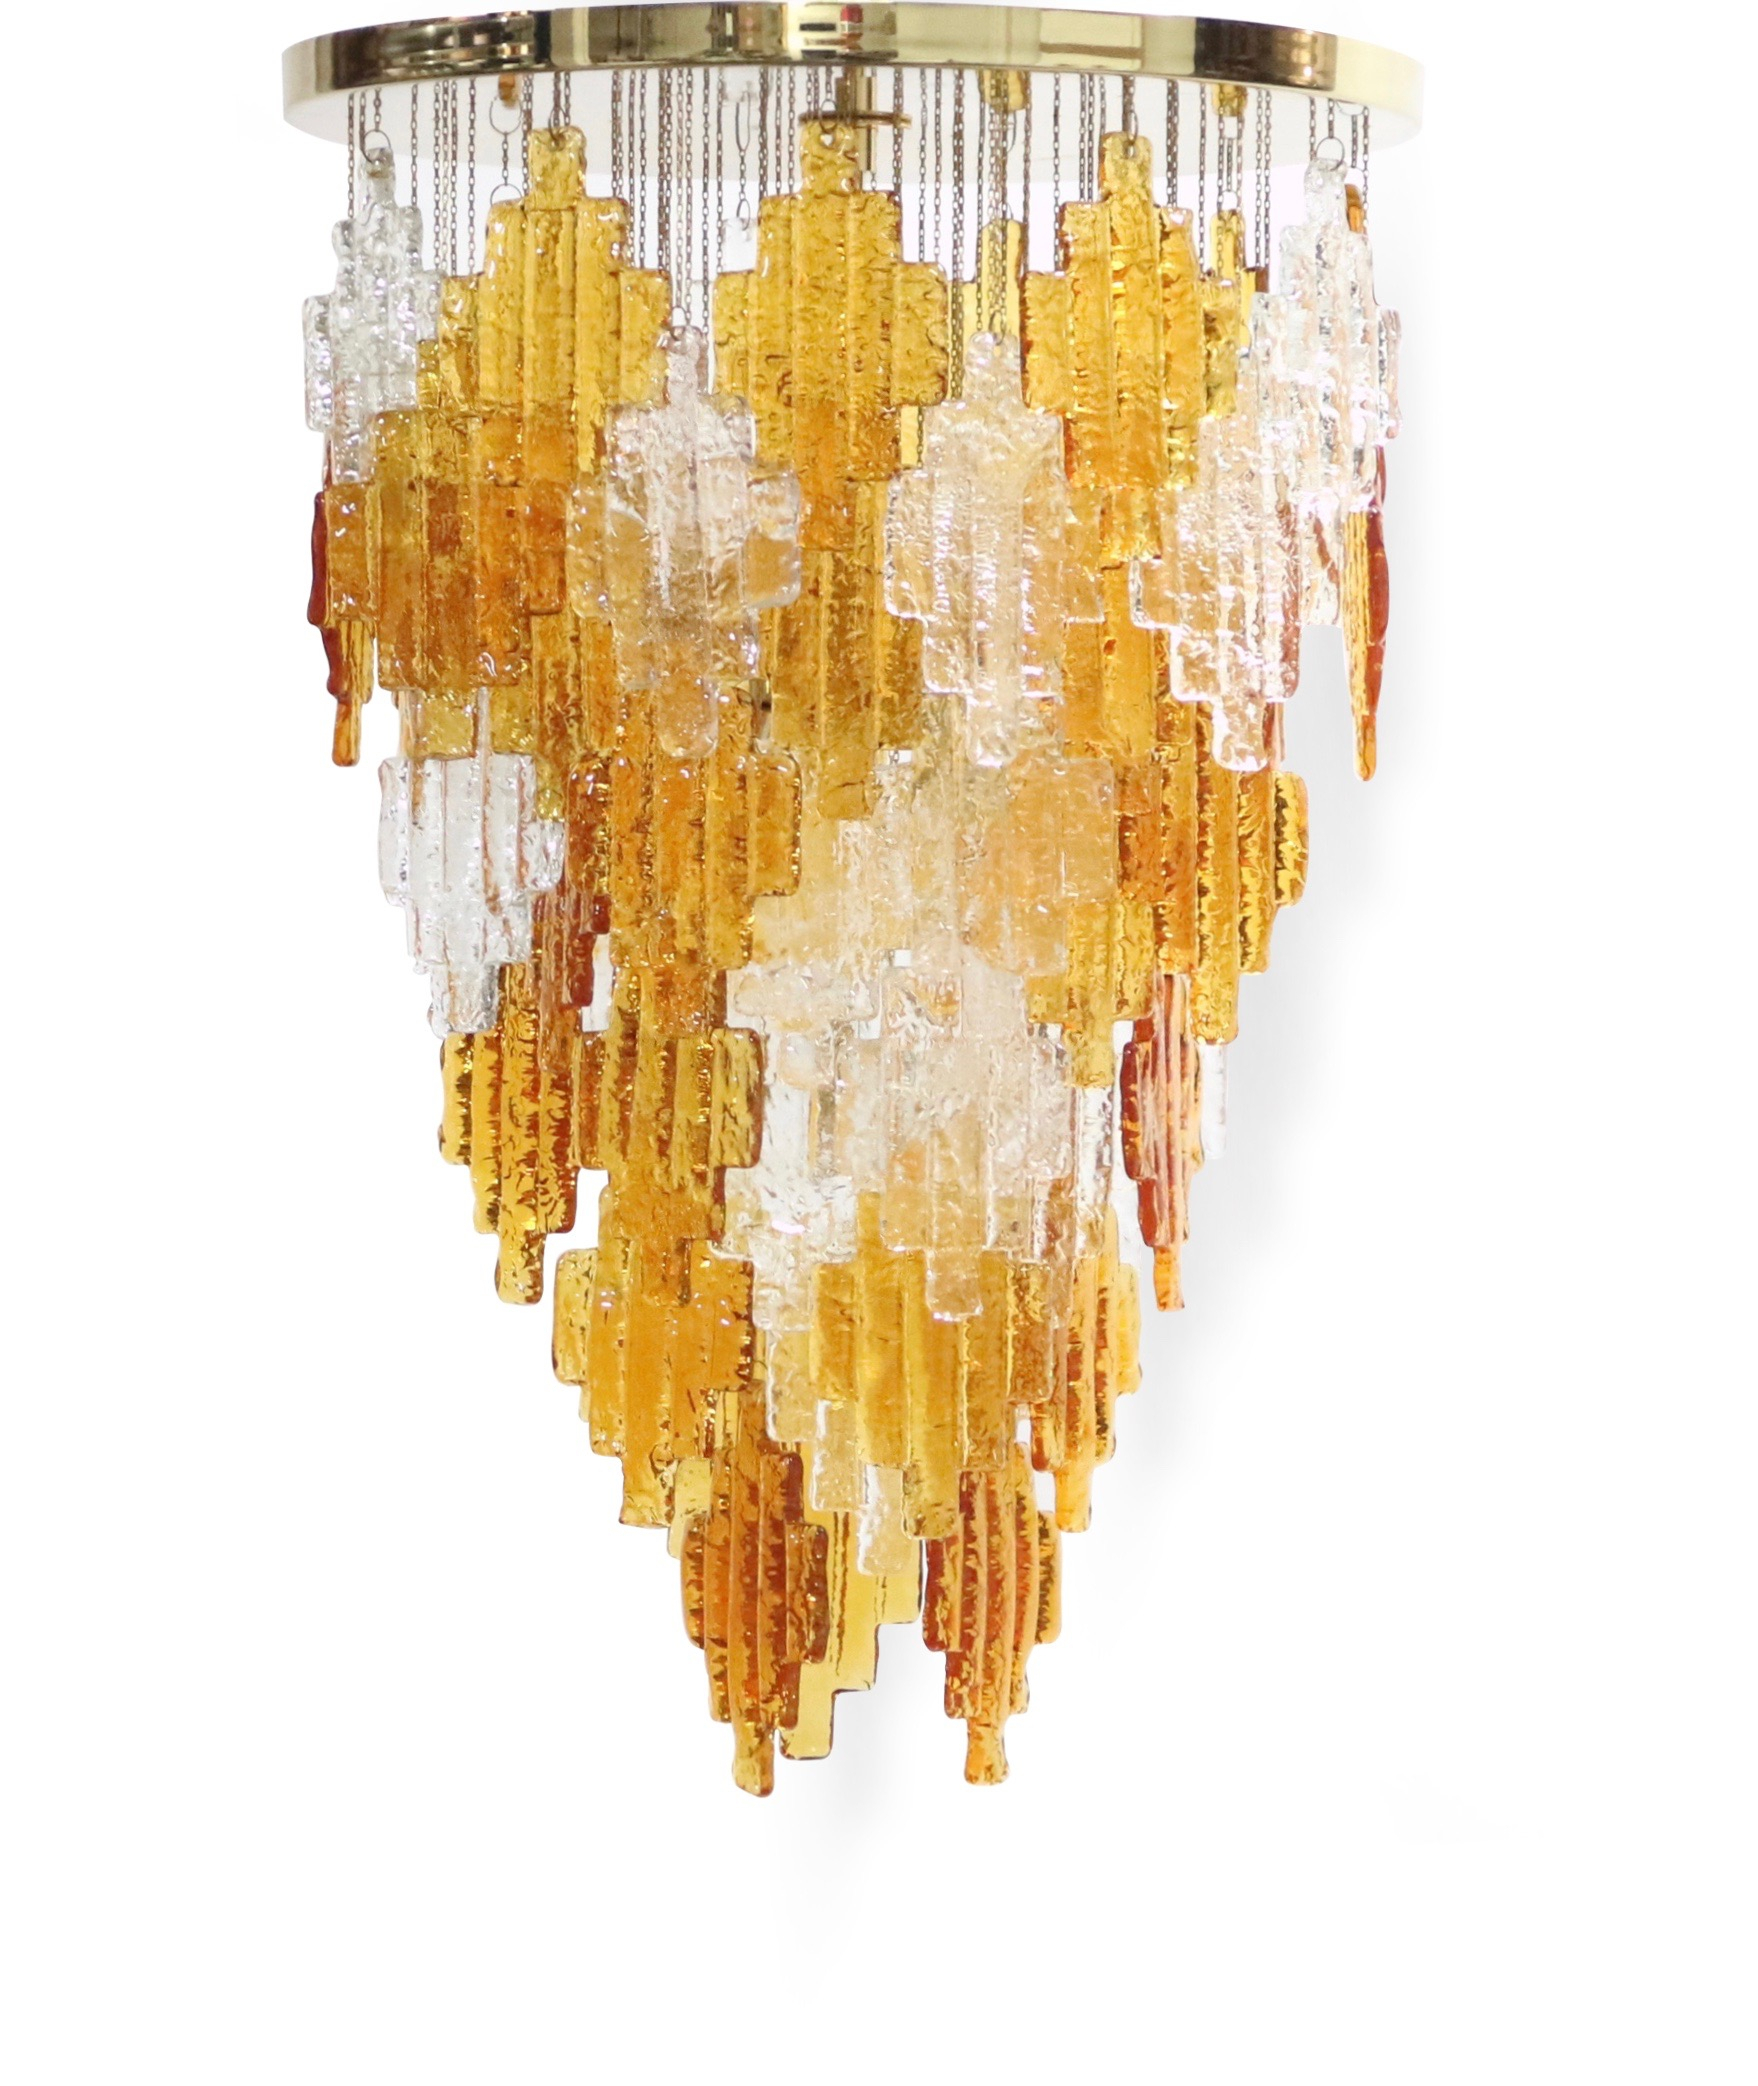 Albano Poli For Poliarte Italian Midcentury Murano Glass Pertaining To Albano 4 Light Crystal Chandeliers (Image 9 of 30)